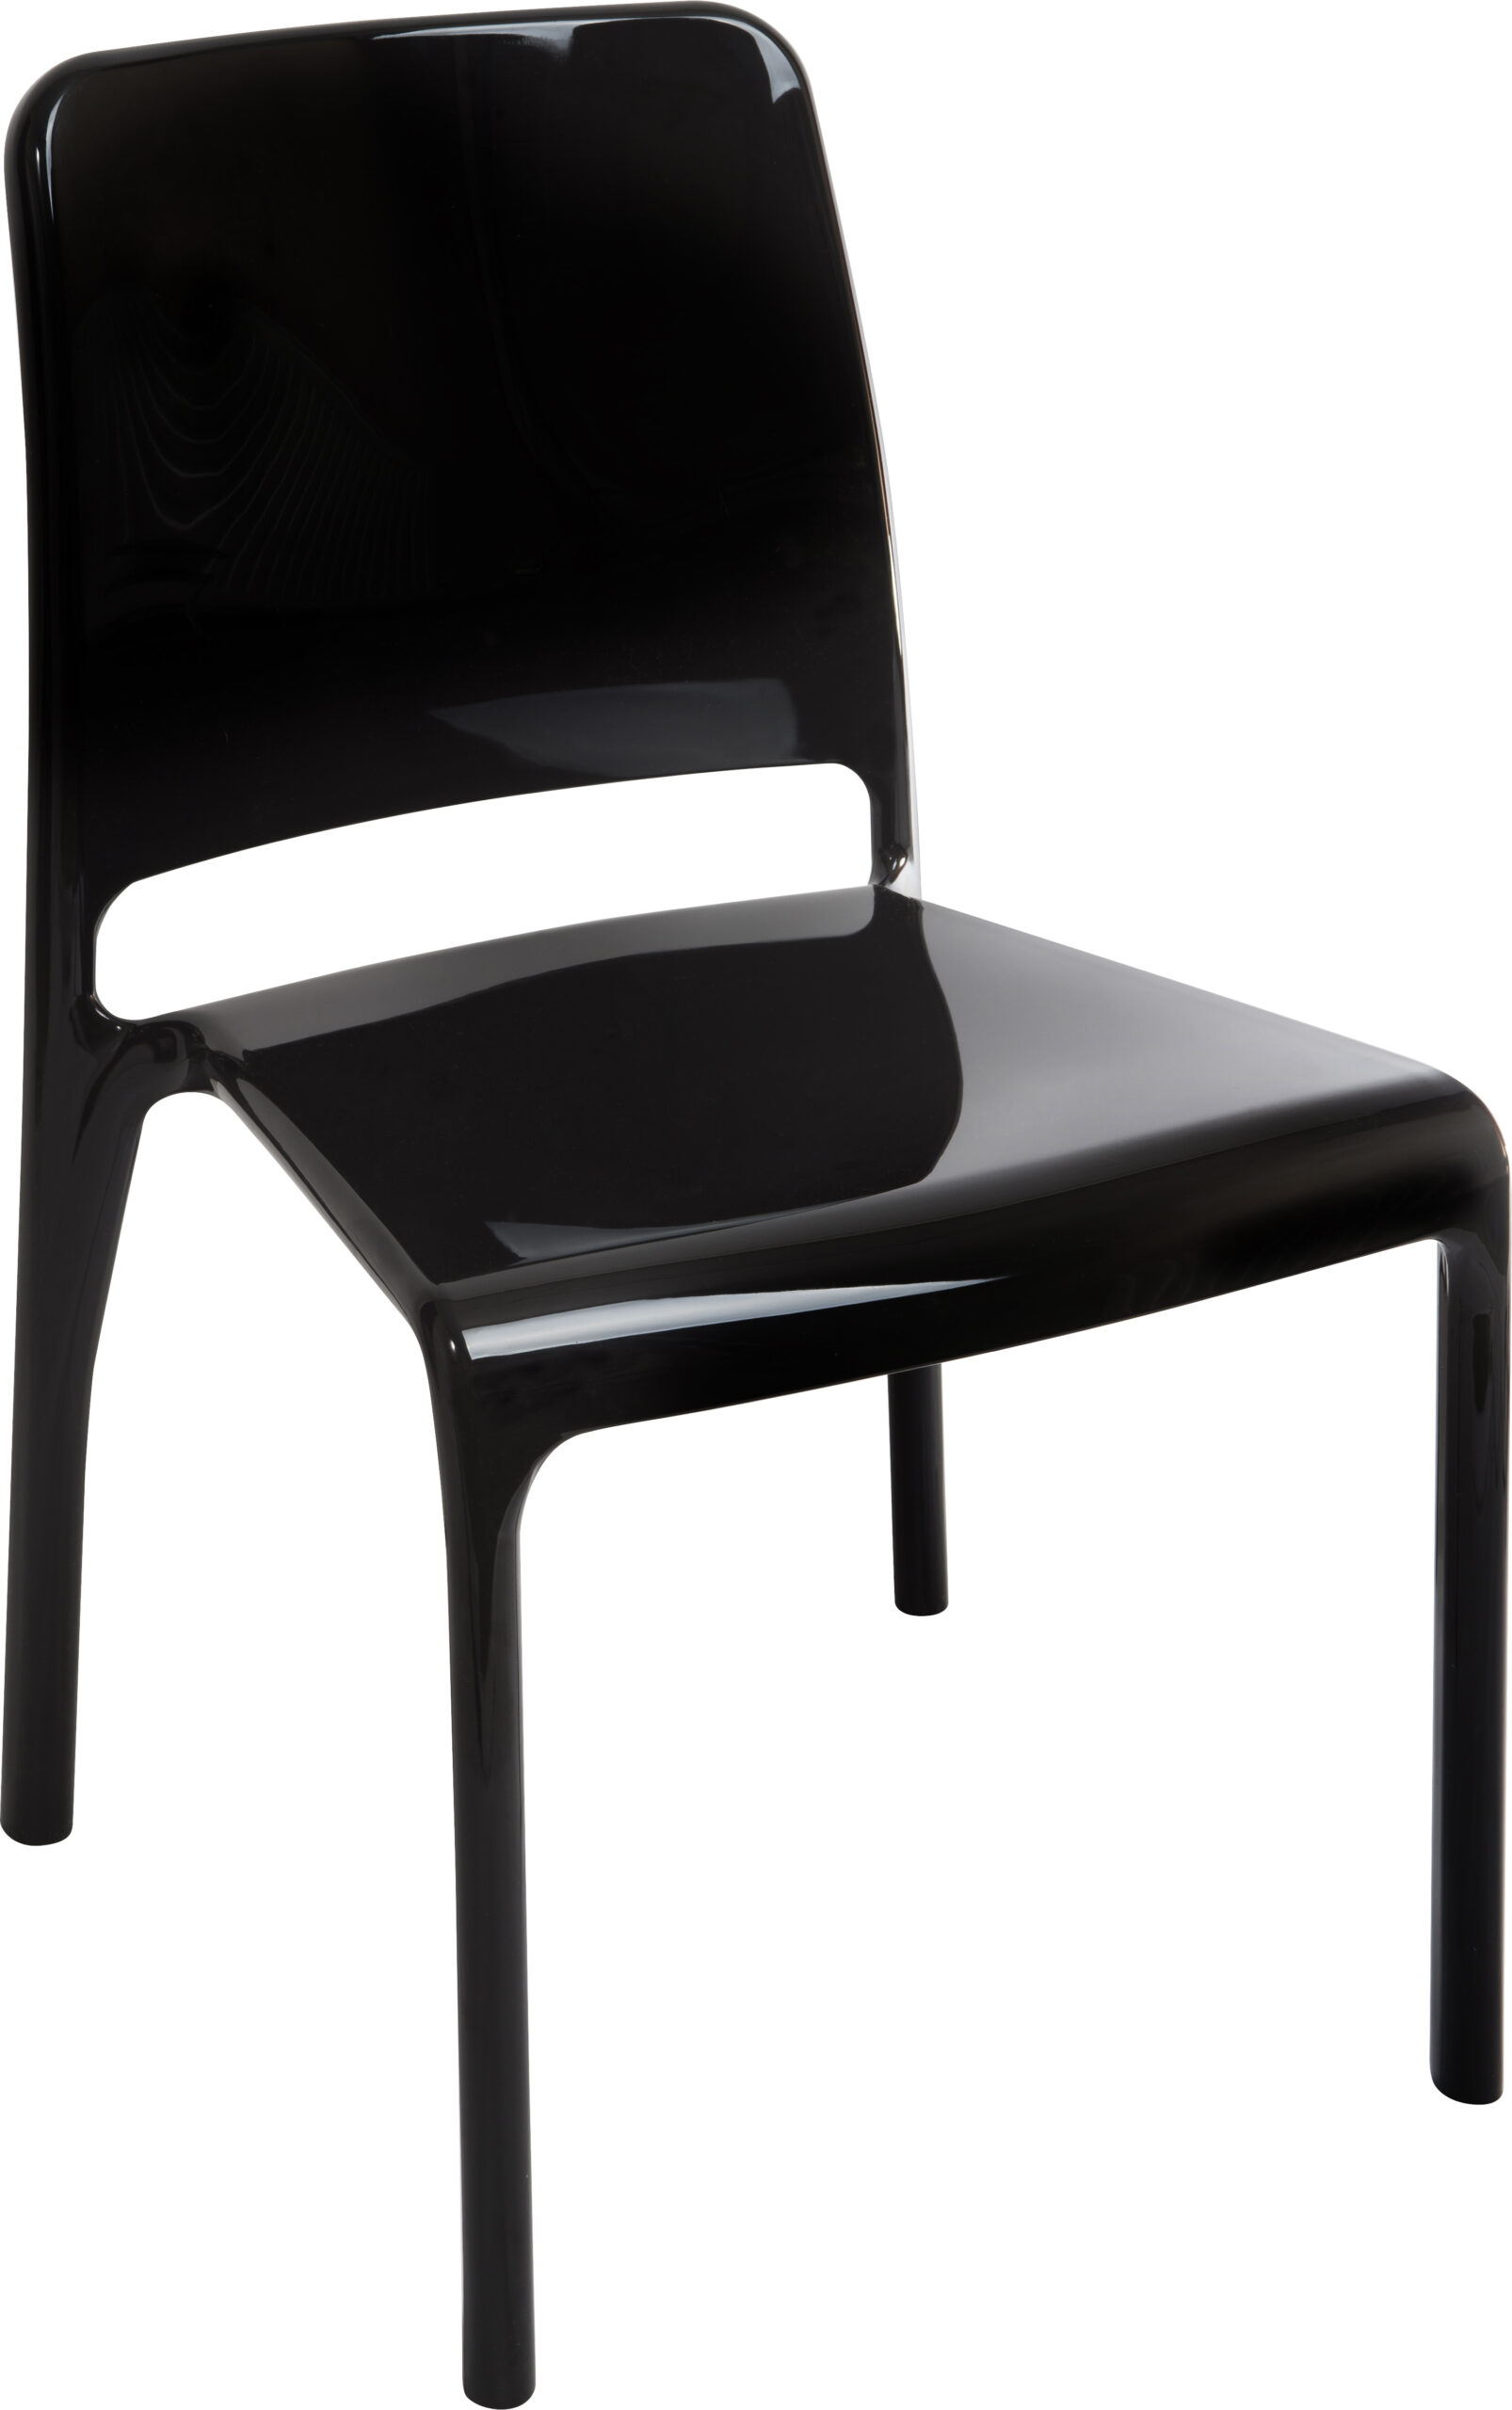 4 Charlize Acrylic Stacking Kitchen Dining Chairs - Black